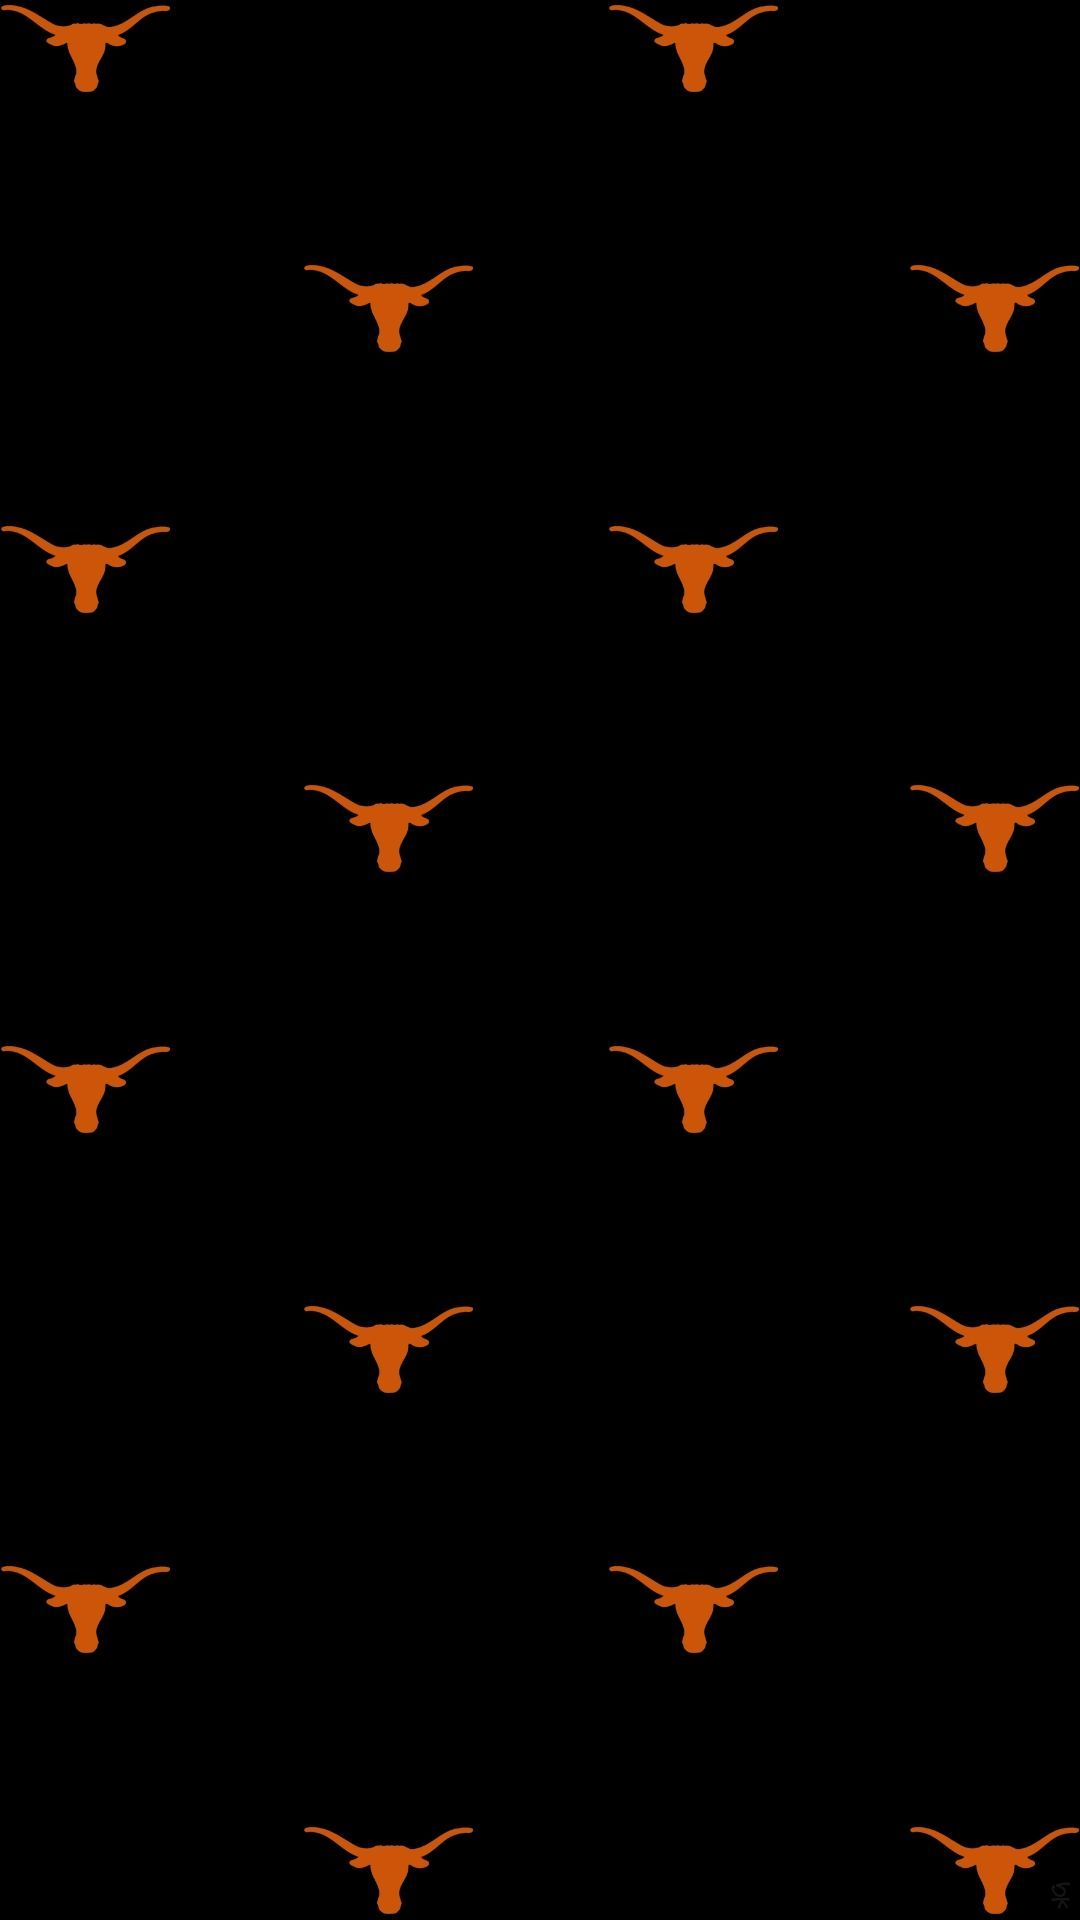 Iphone Wallpaper Coffee Hintergrundbildiphone Tapete 10 Latest Texas Longhorns Iphone Wallpaper Full In 2020 Texas Longhorns Logo Texas Longhorns Longhorns Football